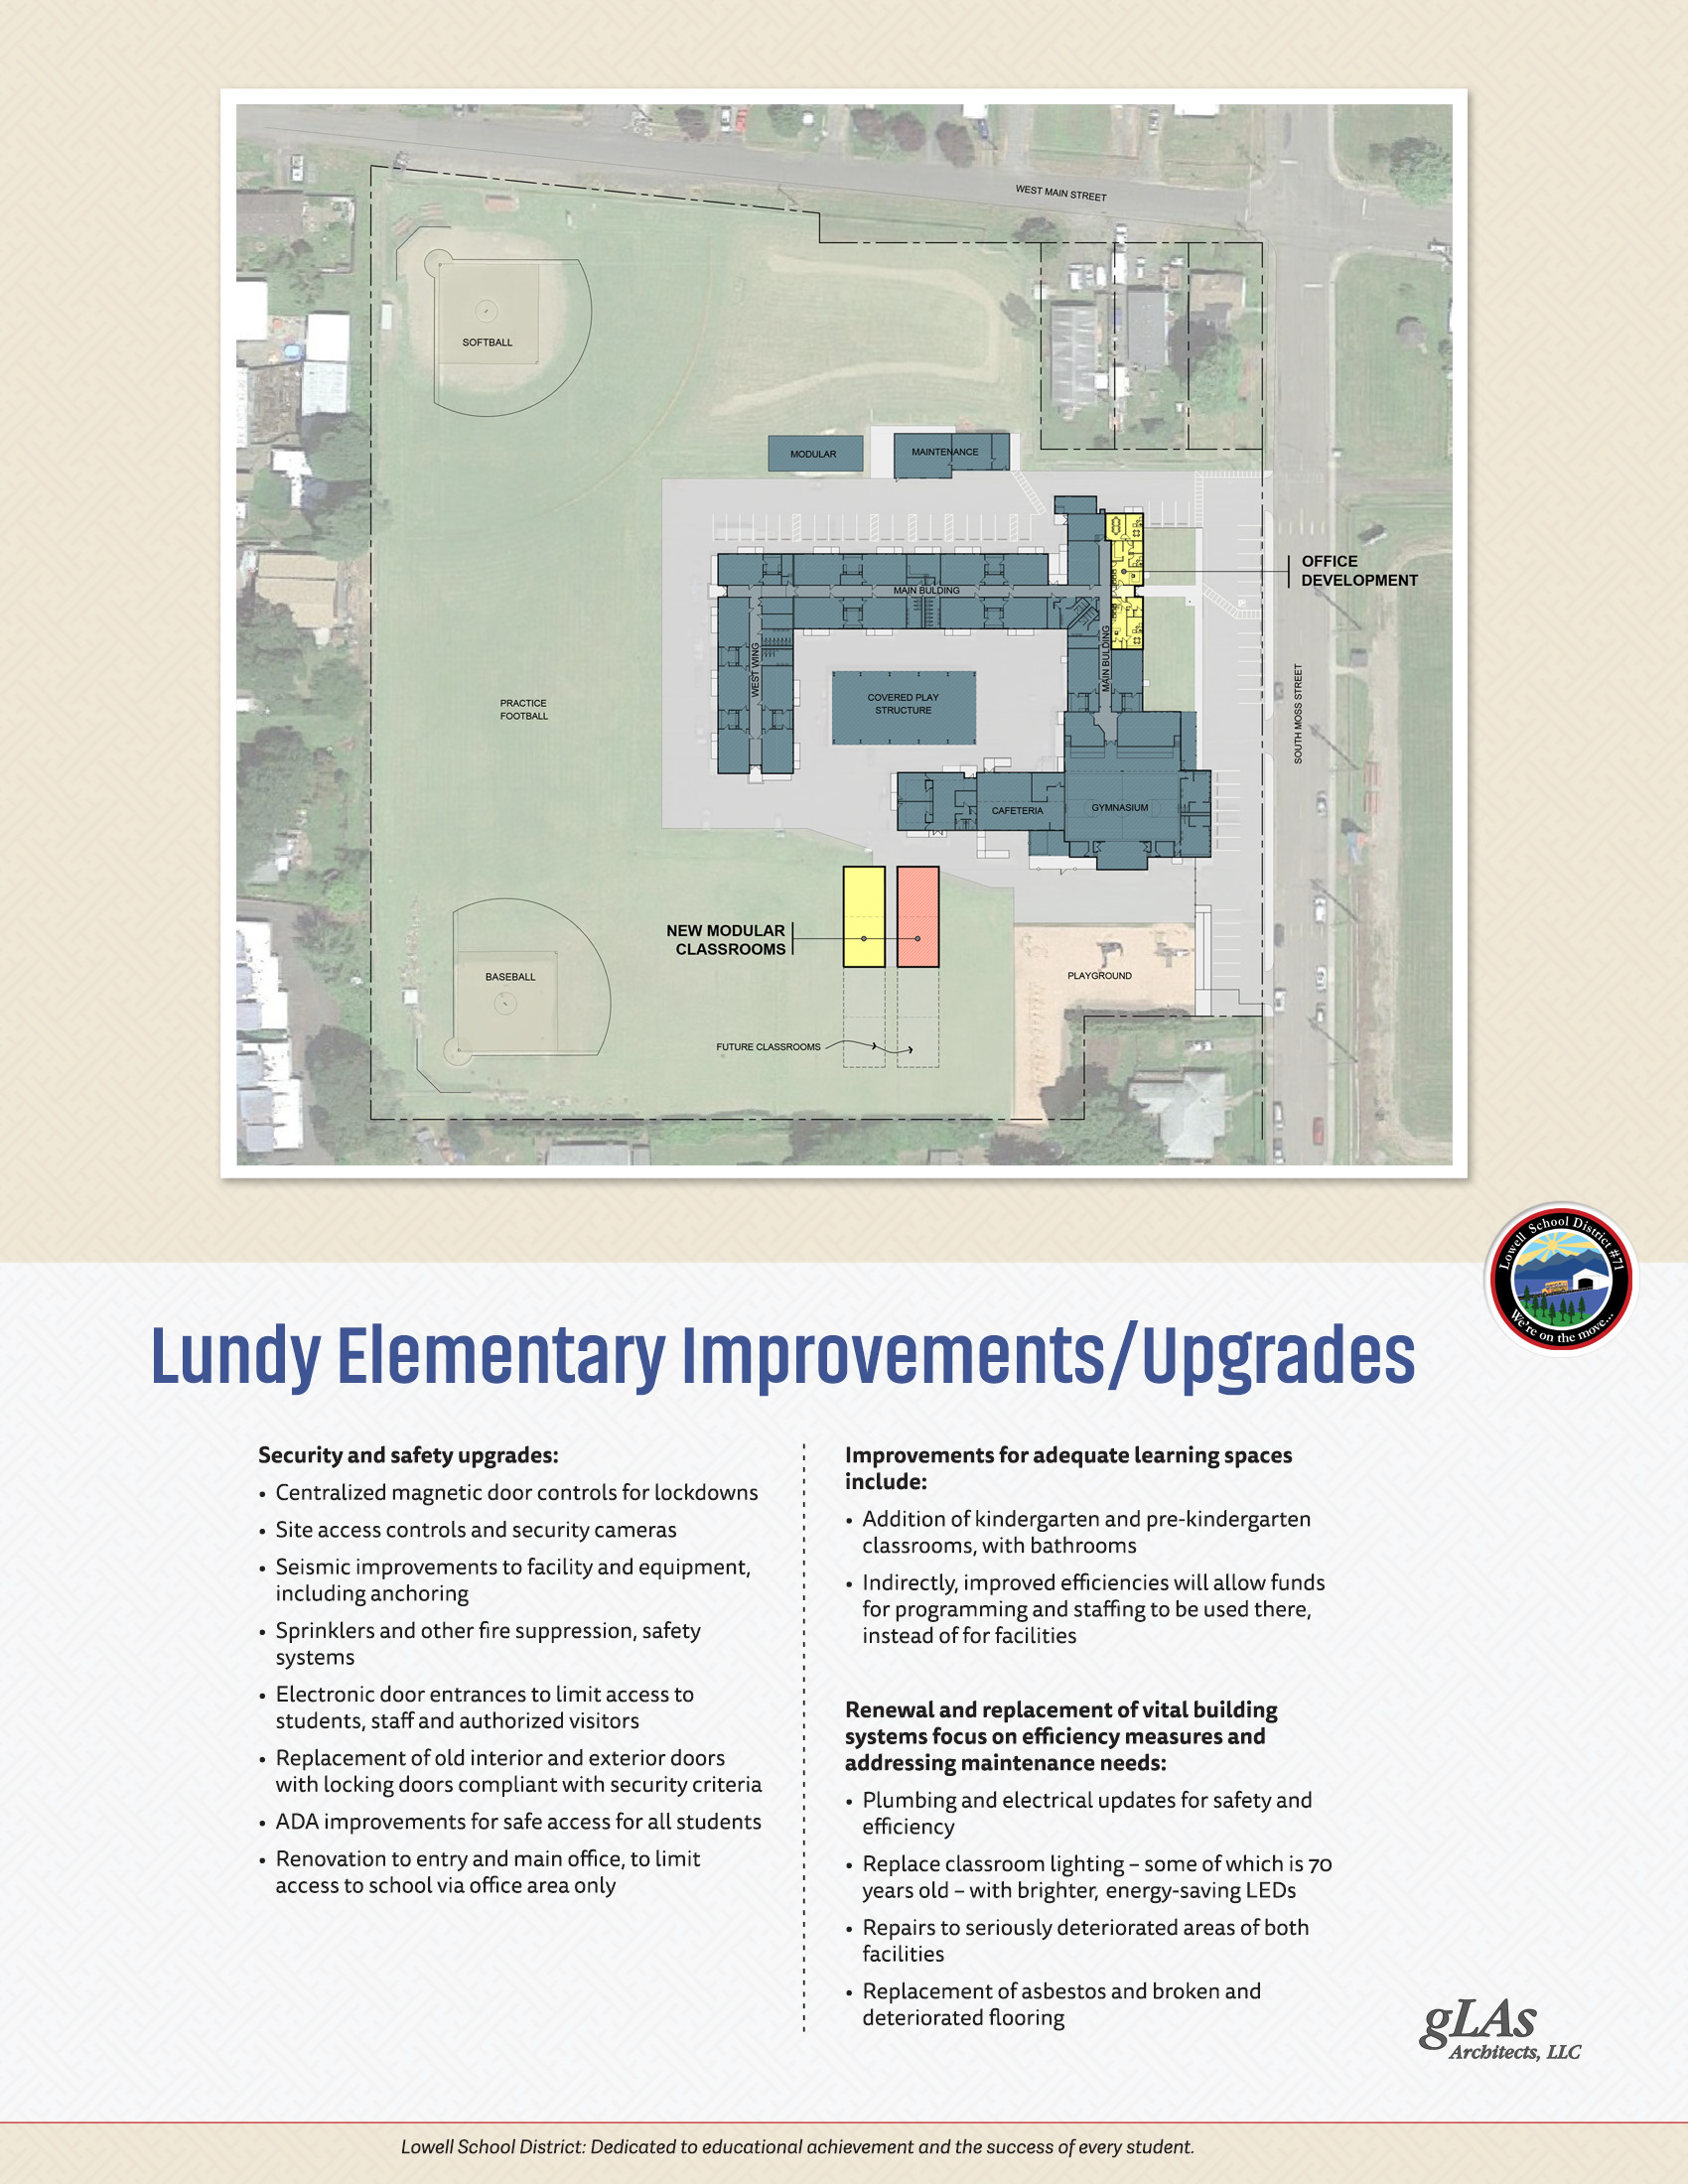 Lundy Elementary Facilities Improvement Plan